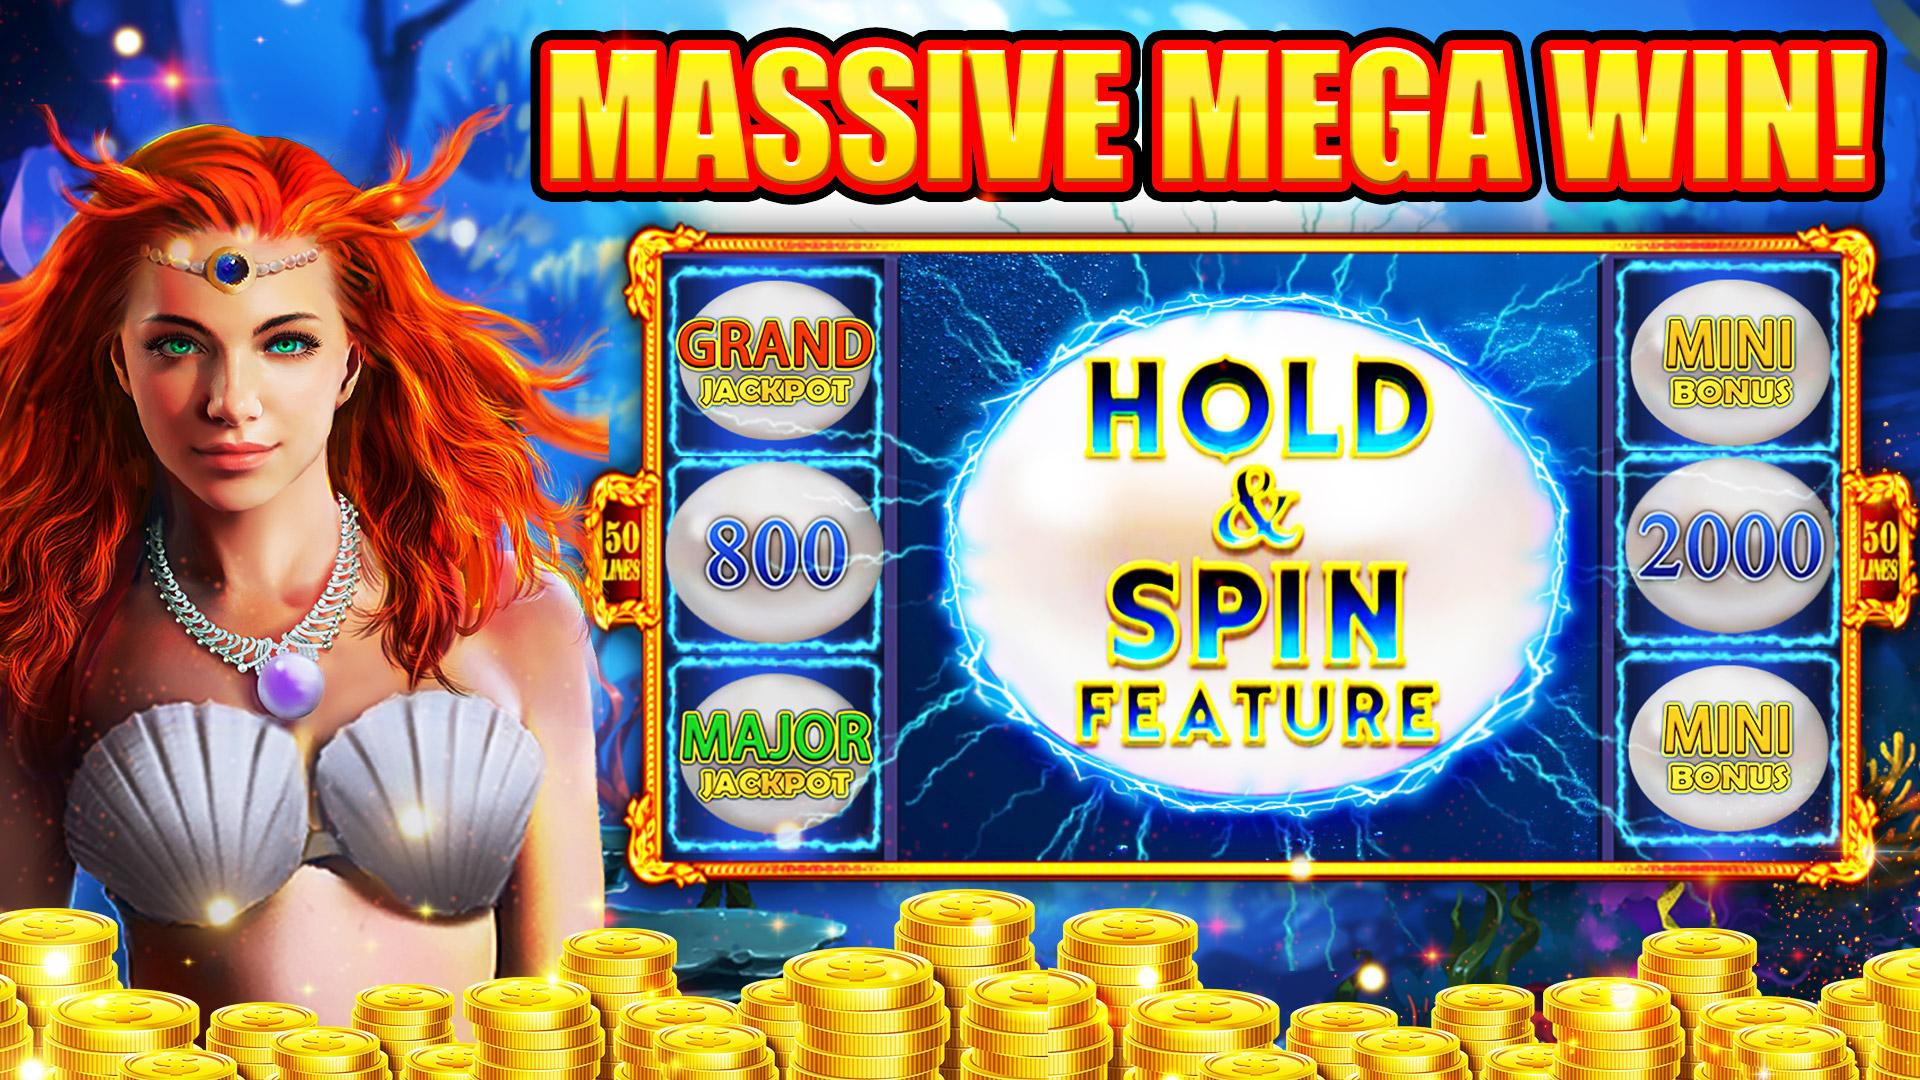 Grand Jackpot Slots Pop Vegas Casino Free Games 1.0.44 Screenshot 7